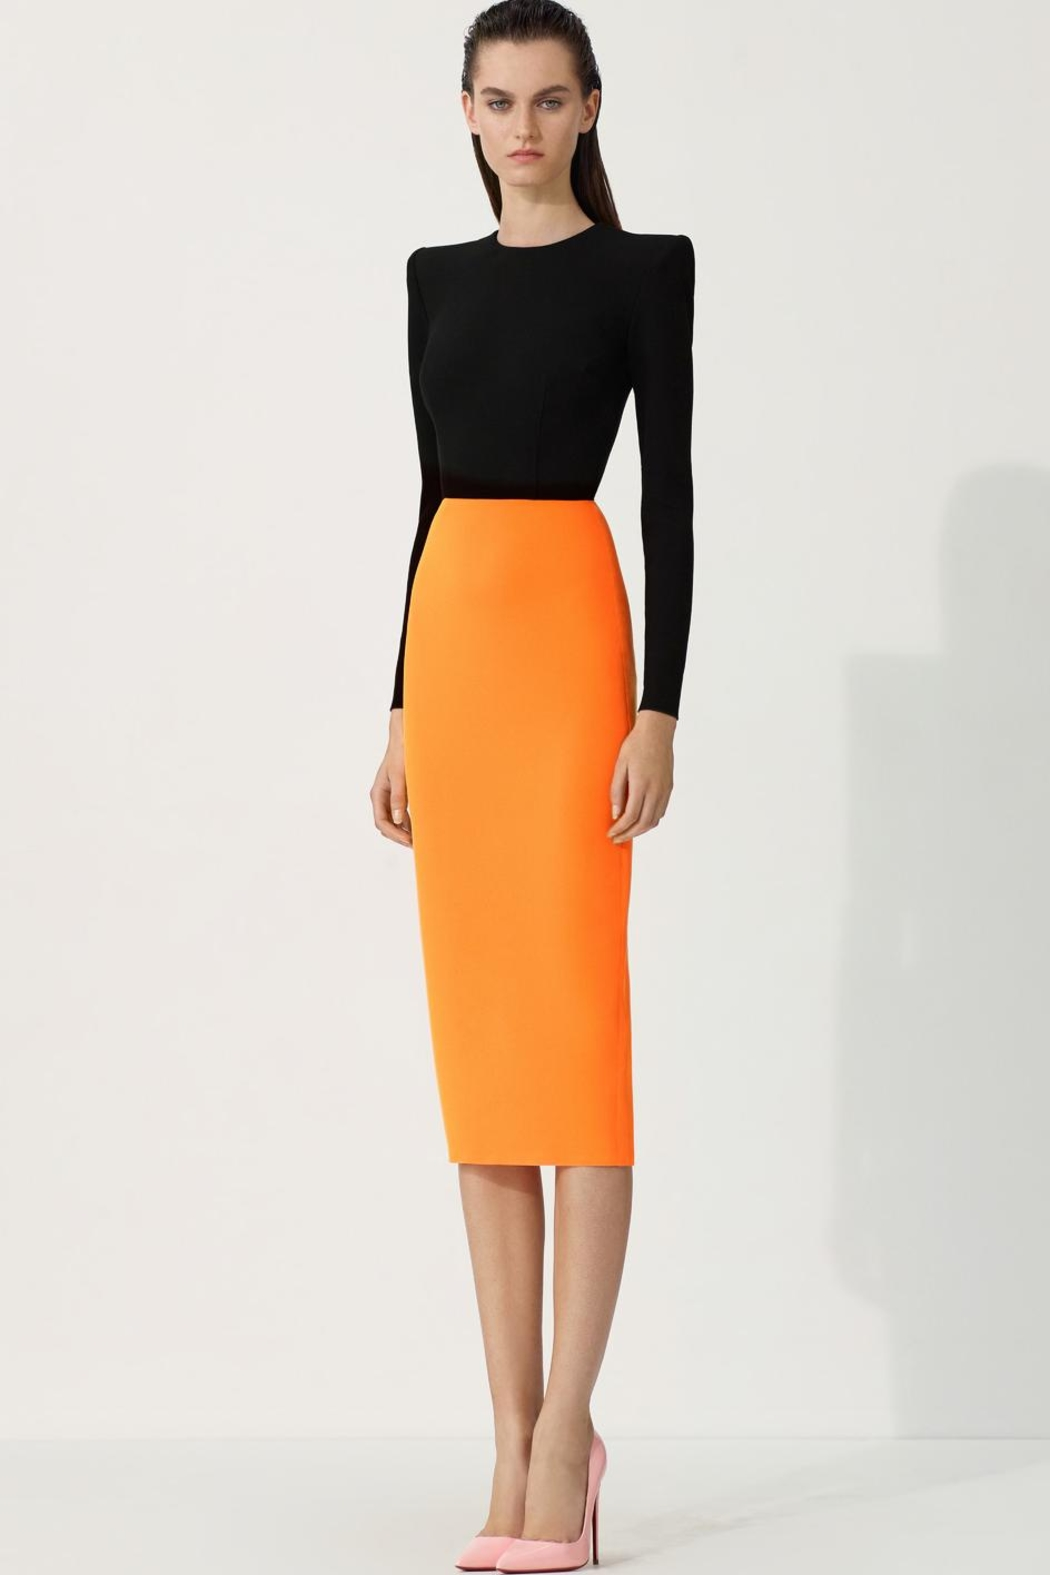 Alex Perry Darley-Crepe Two-Tone Dress - Main Image